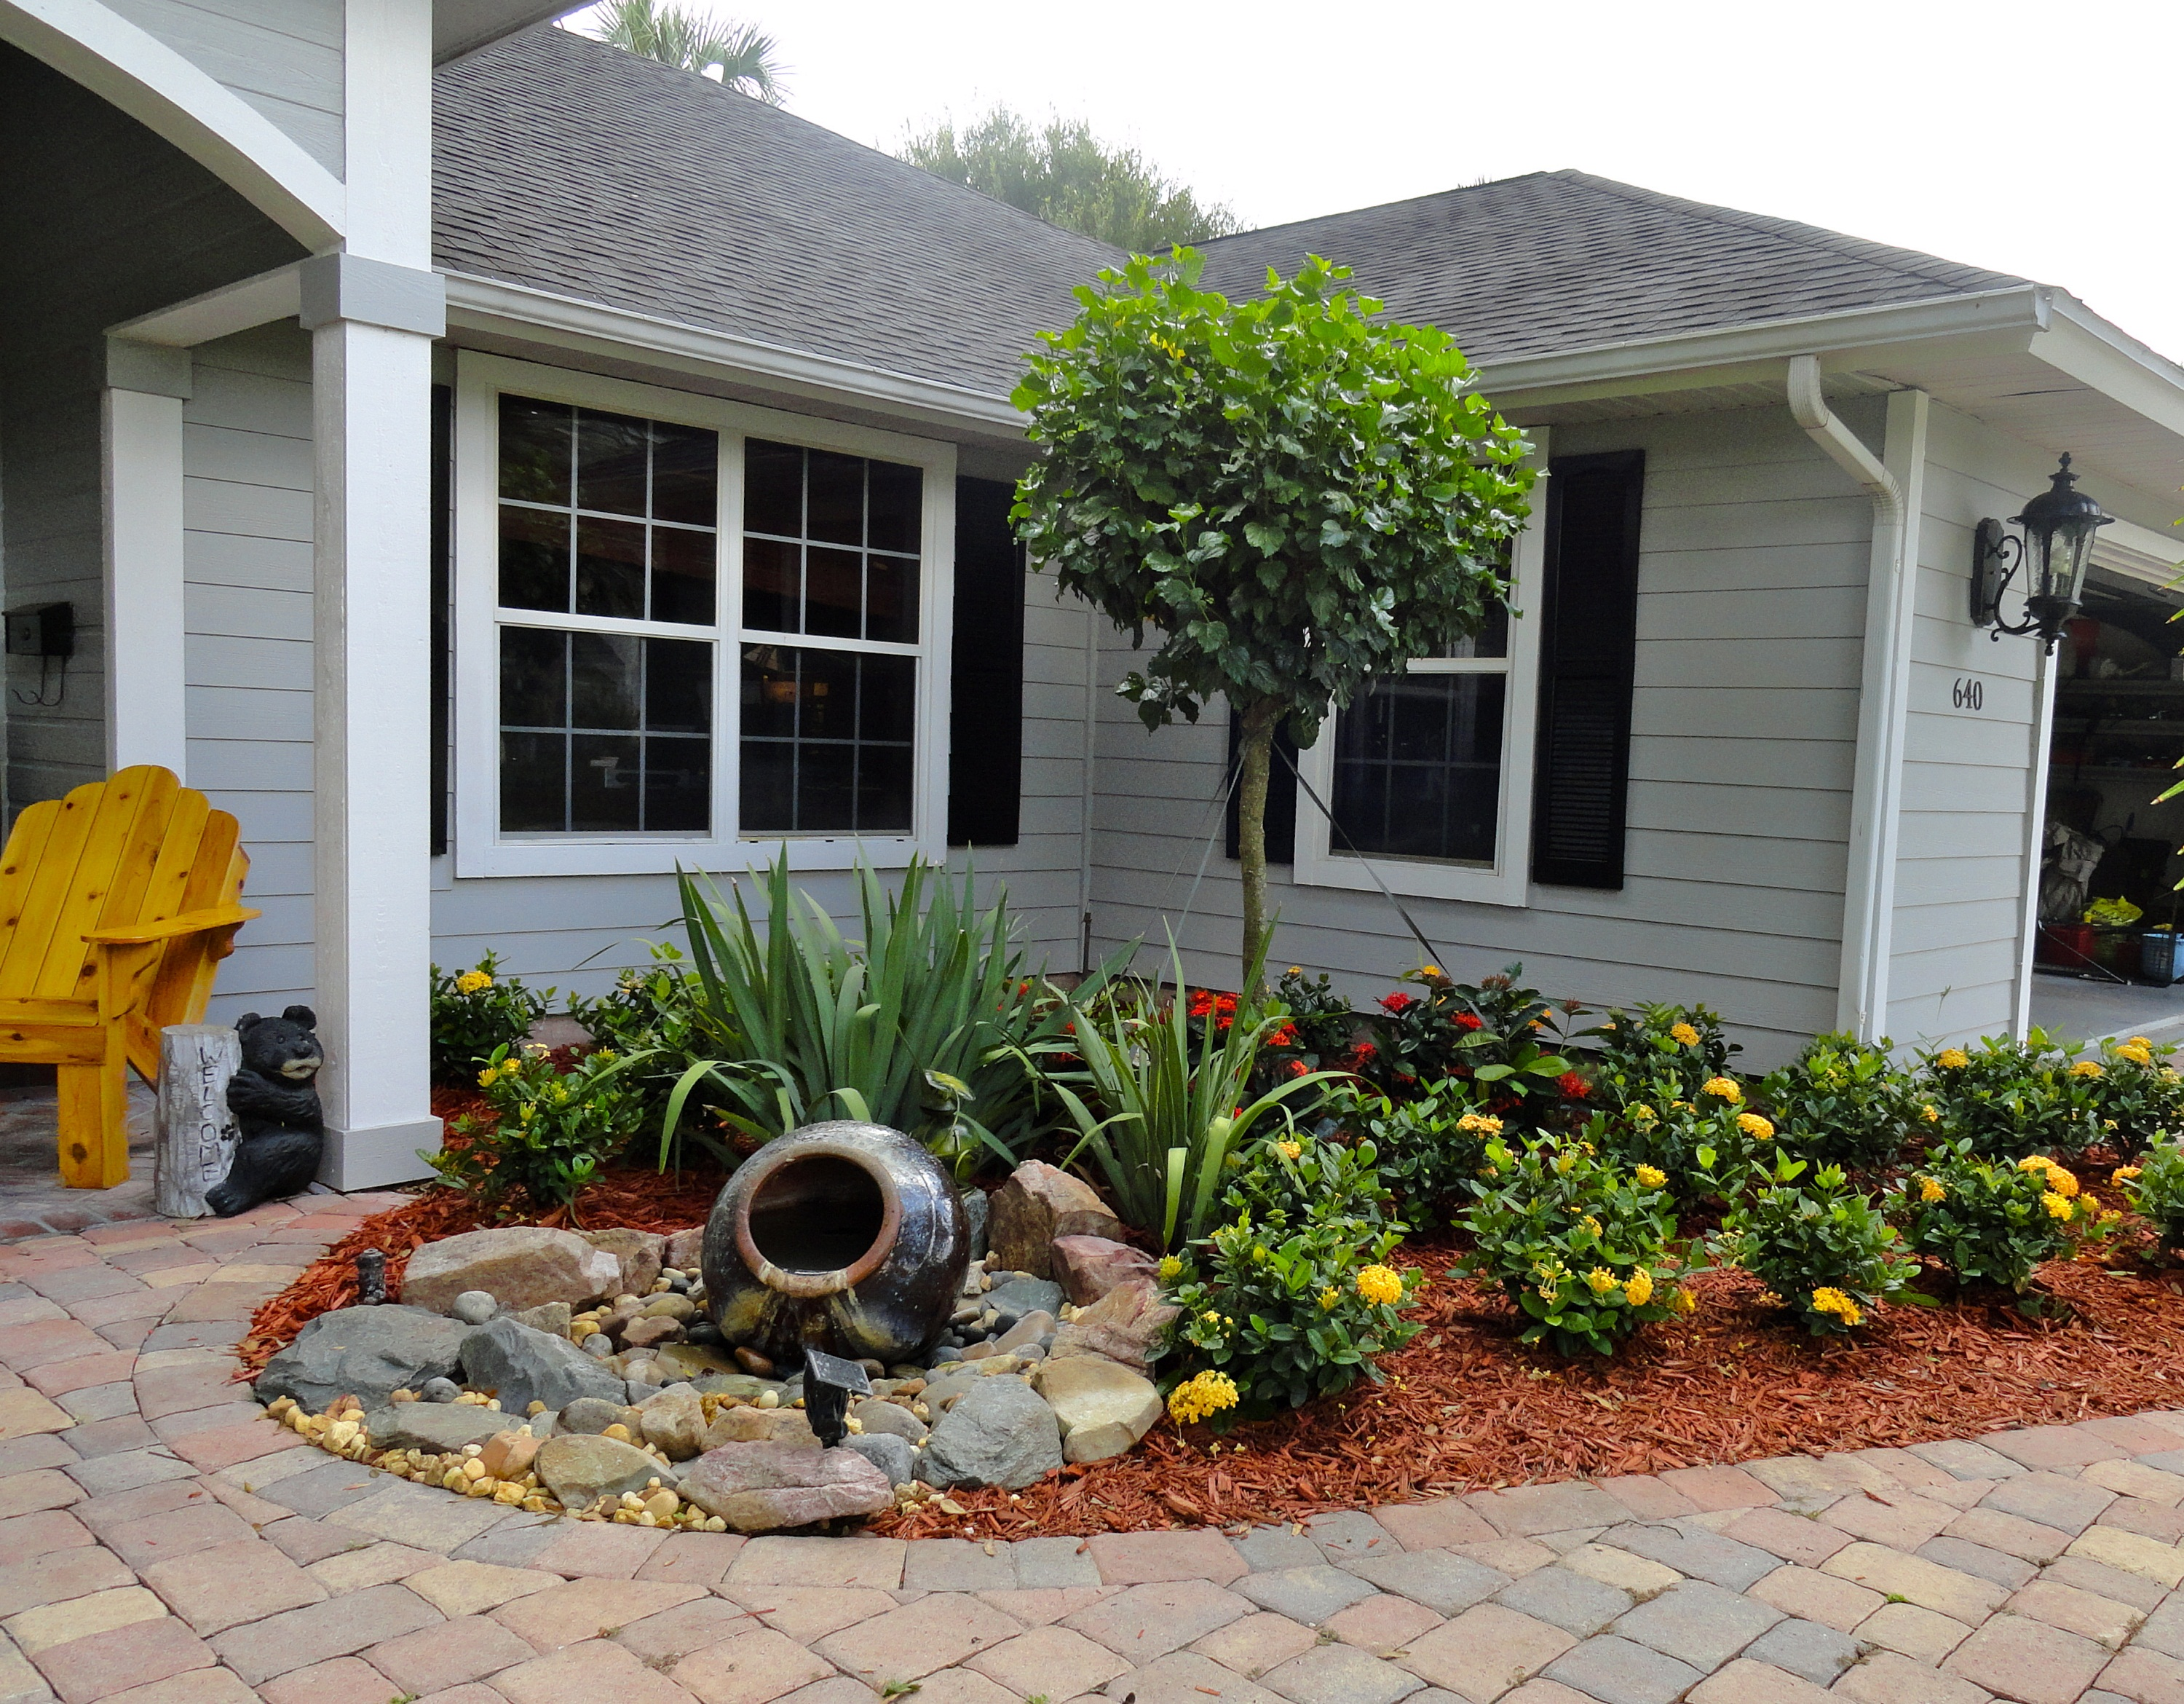 Stupendous Front Yard Landscaping Ideas Pond Small Garden Design With Pond Largest Home Design Picture Inspirations Pitcheantrous